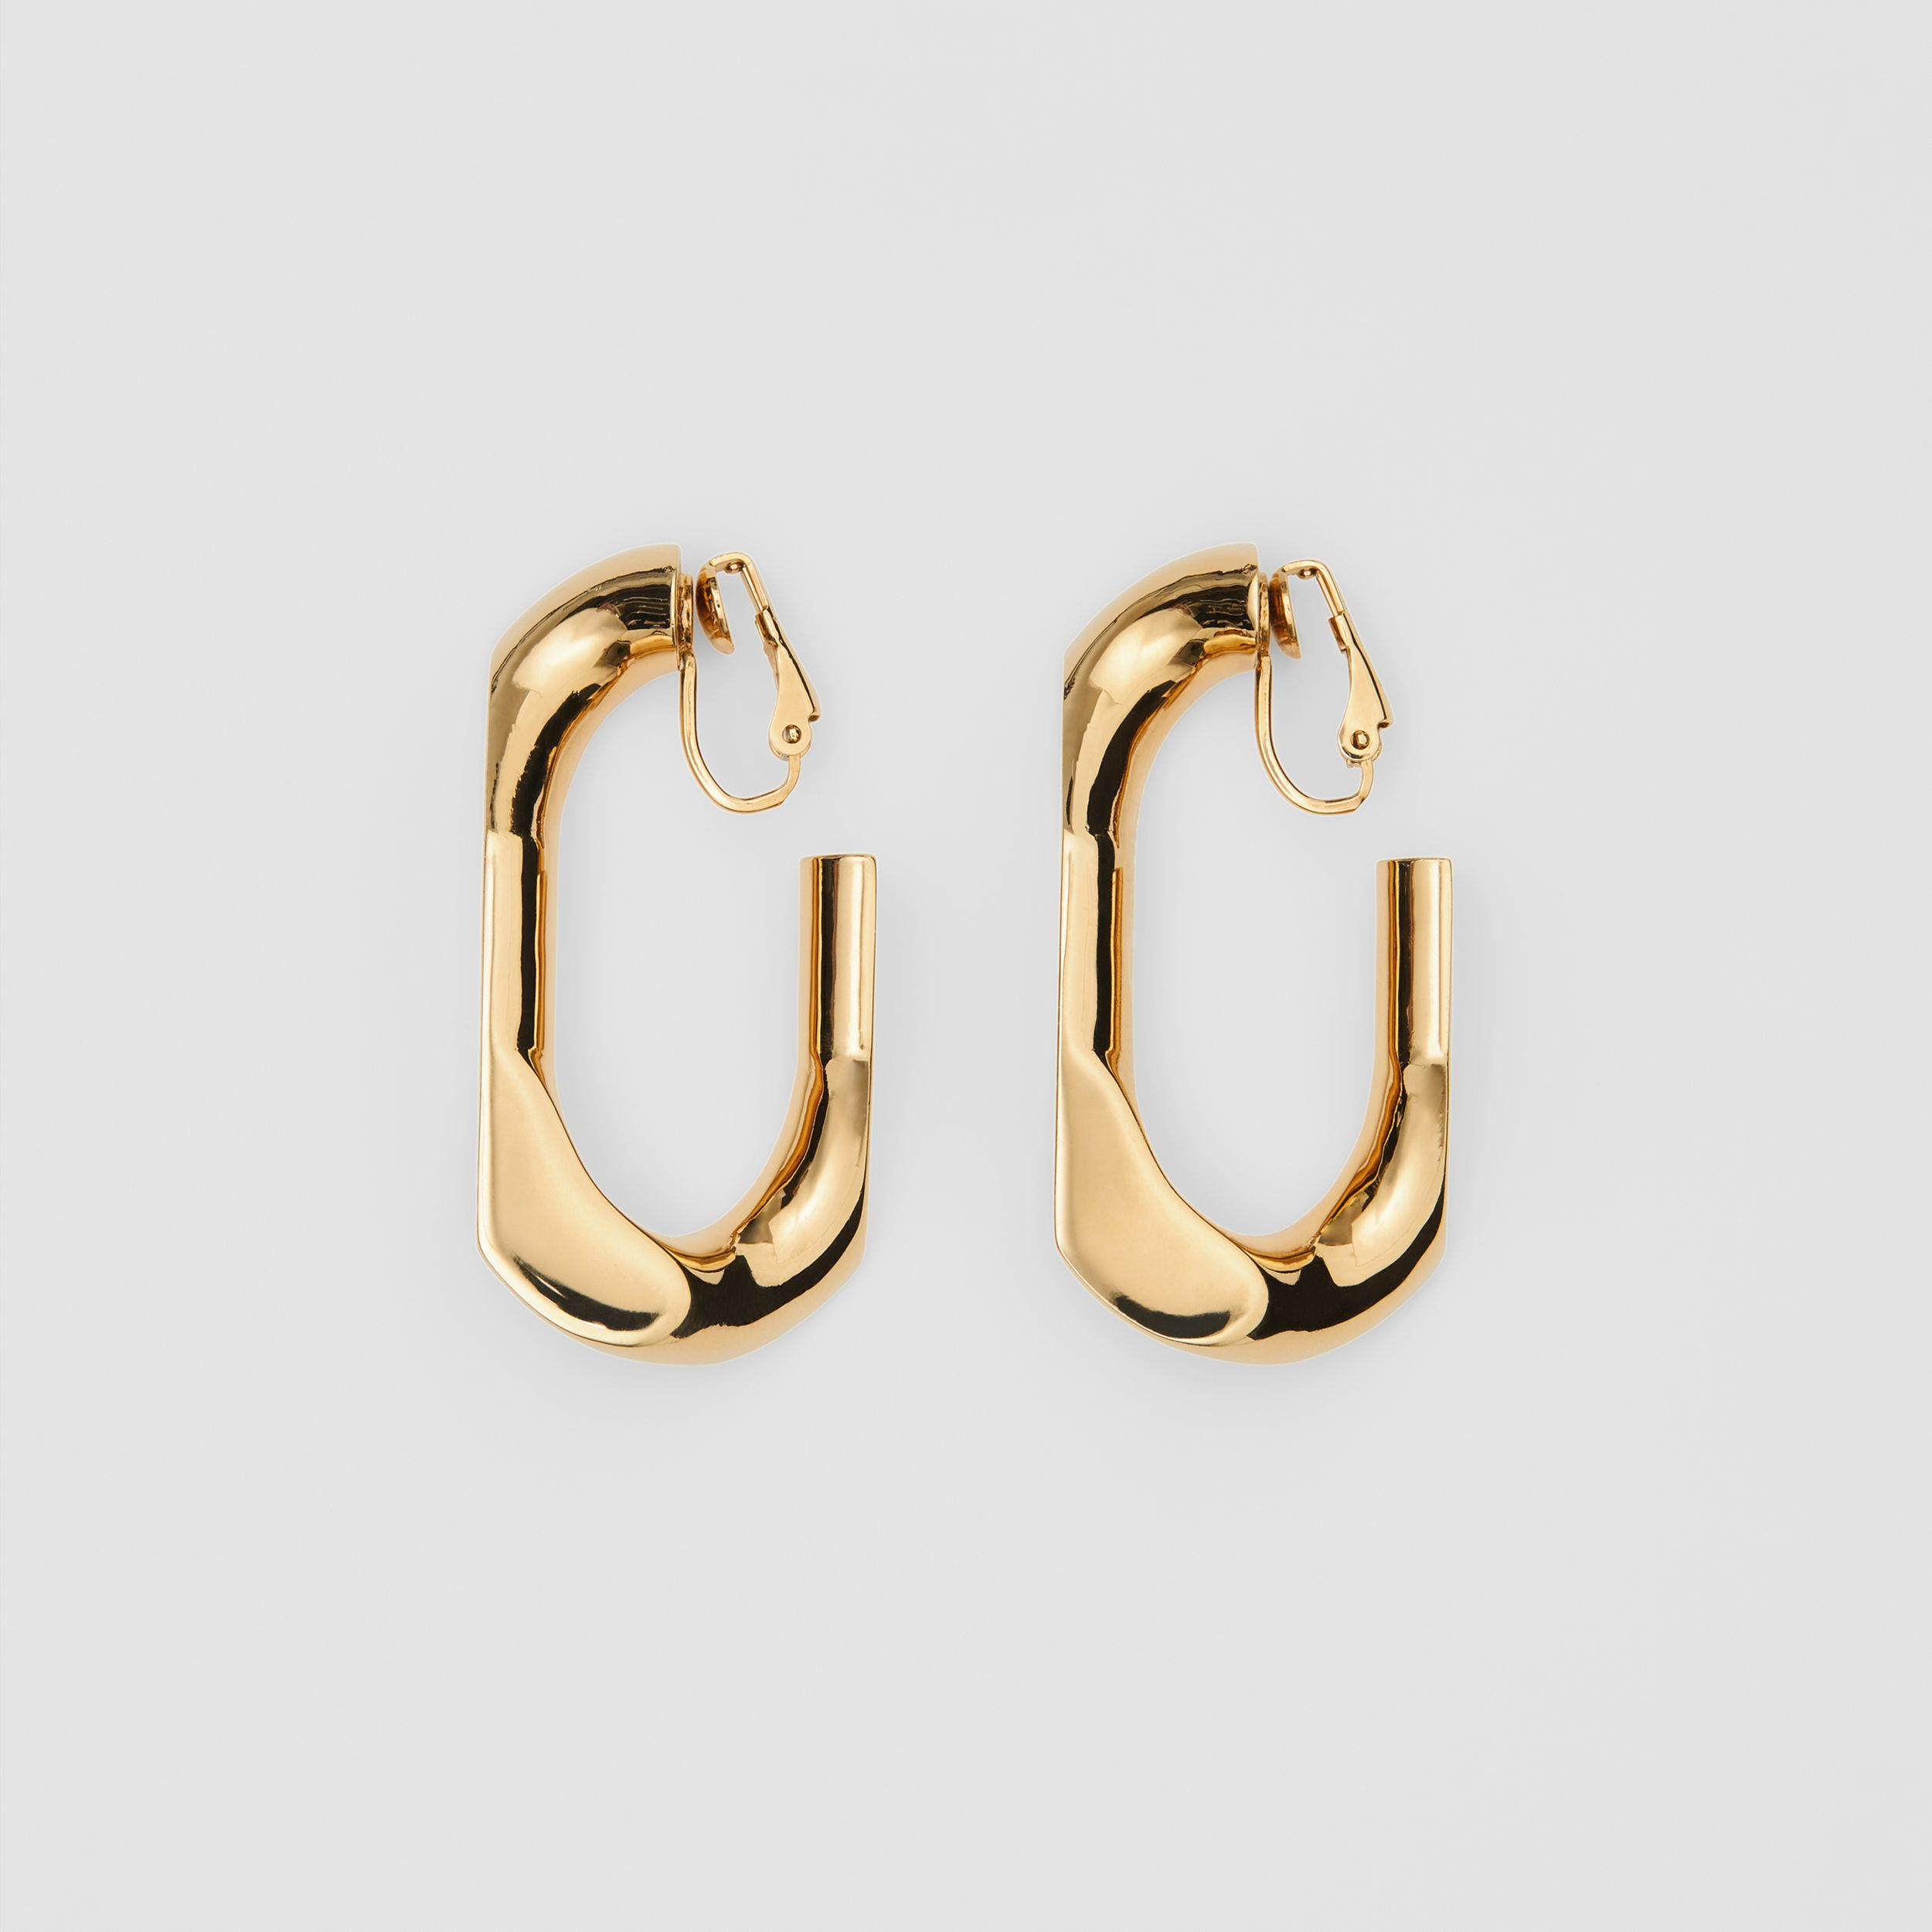 Large Gold-plated Chain-link Earrings in Light - Women | Burberry - 1